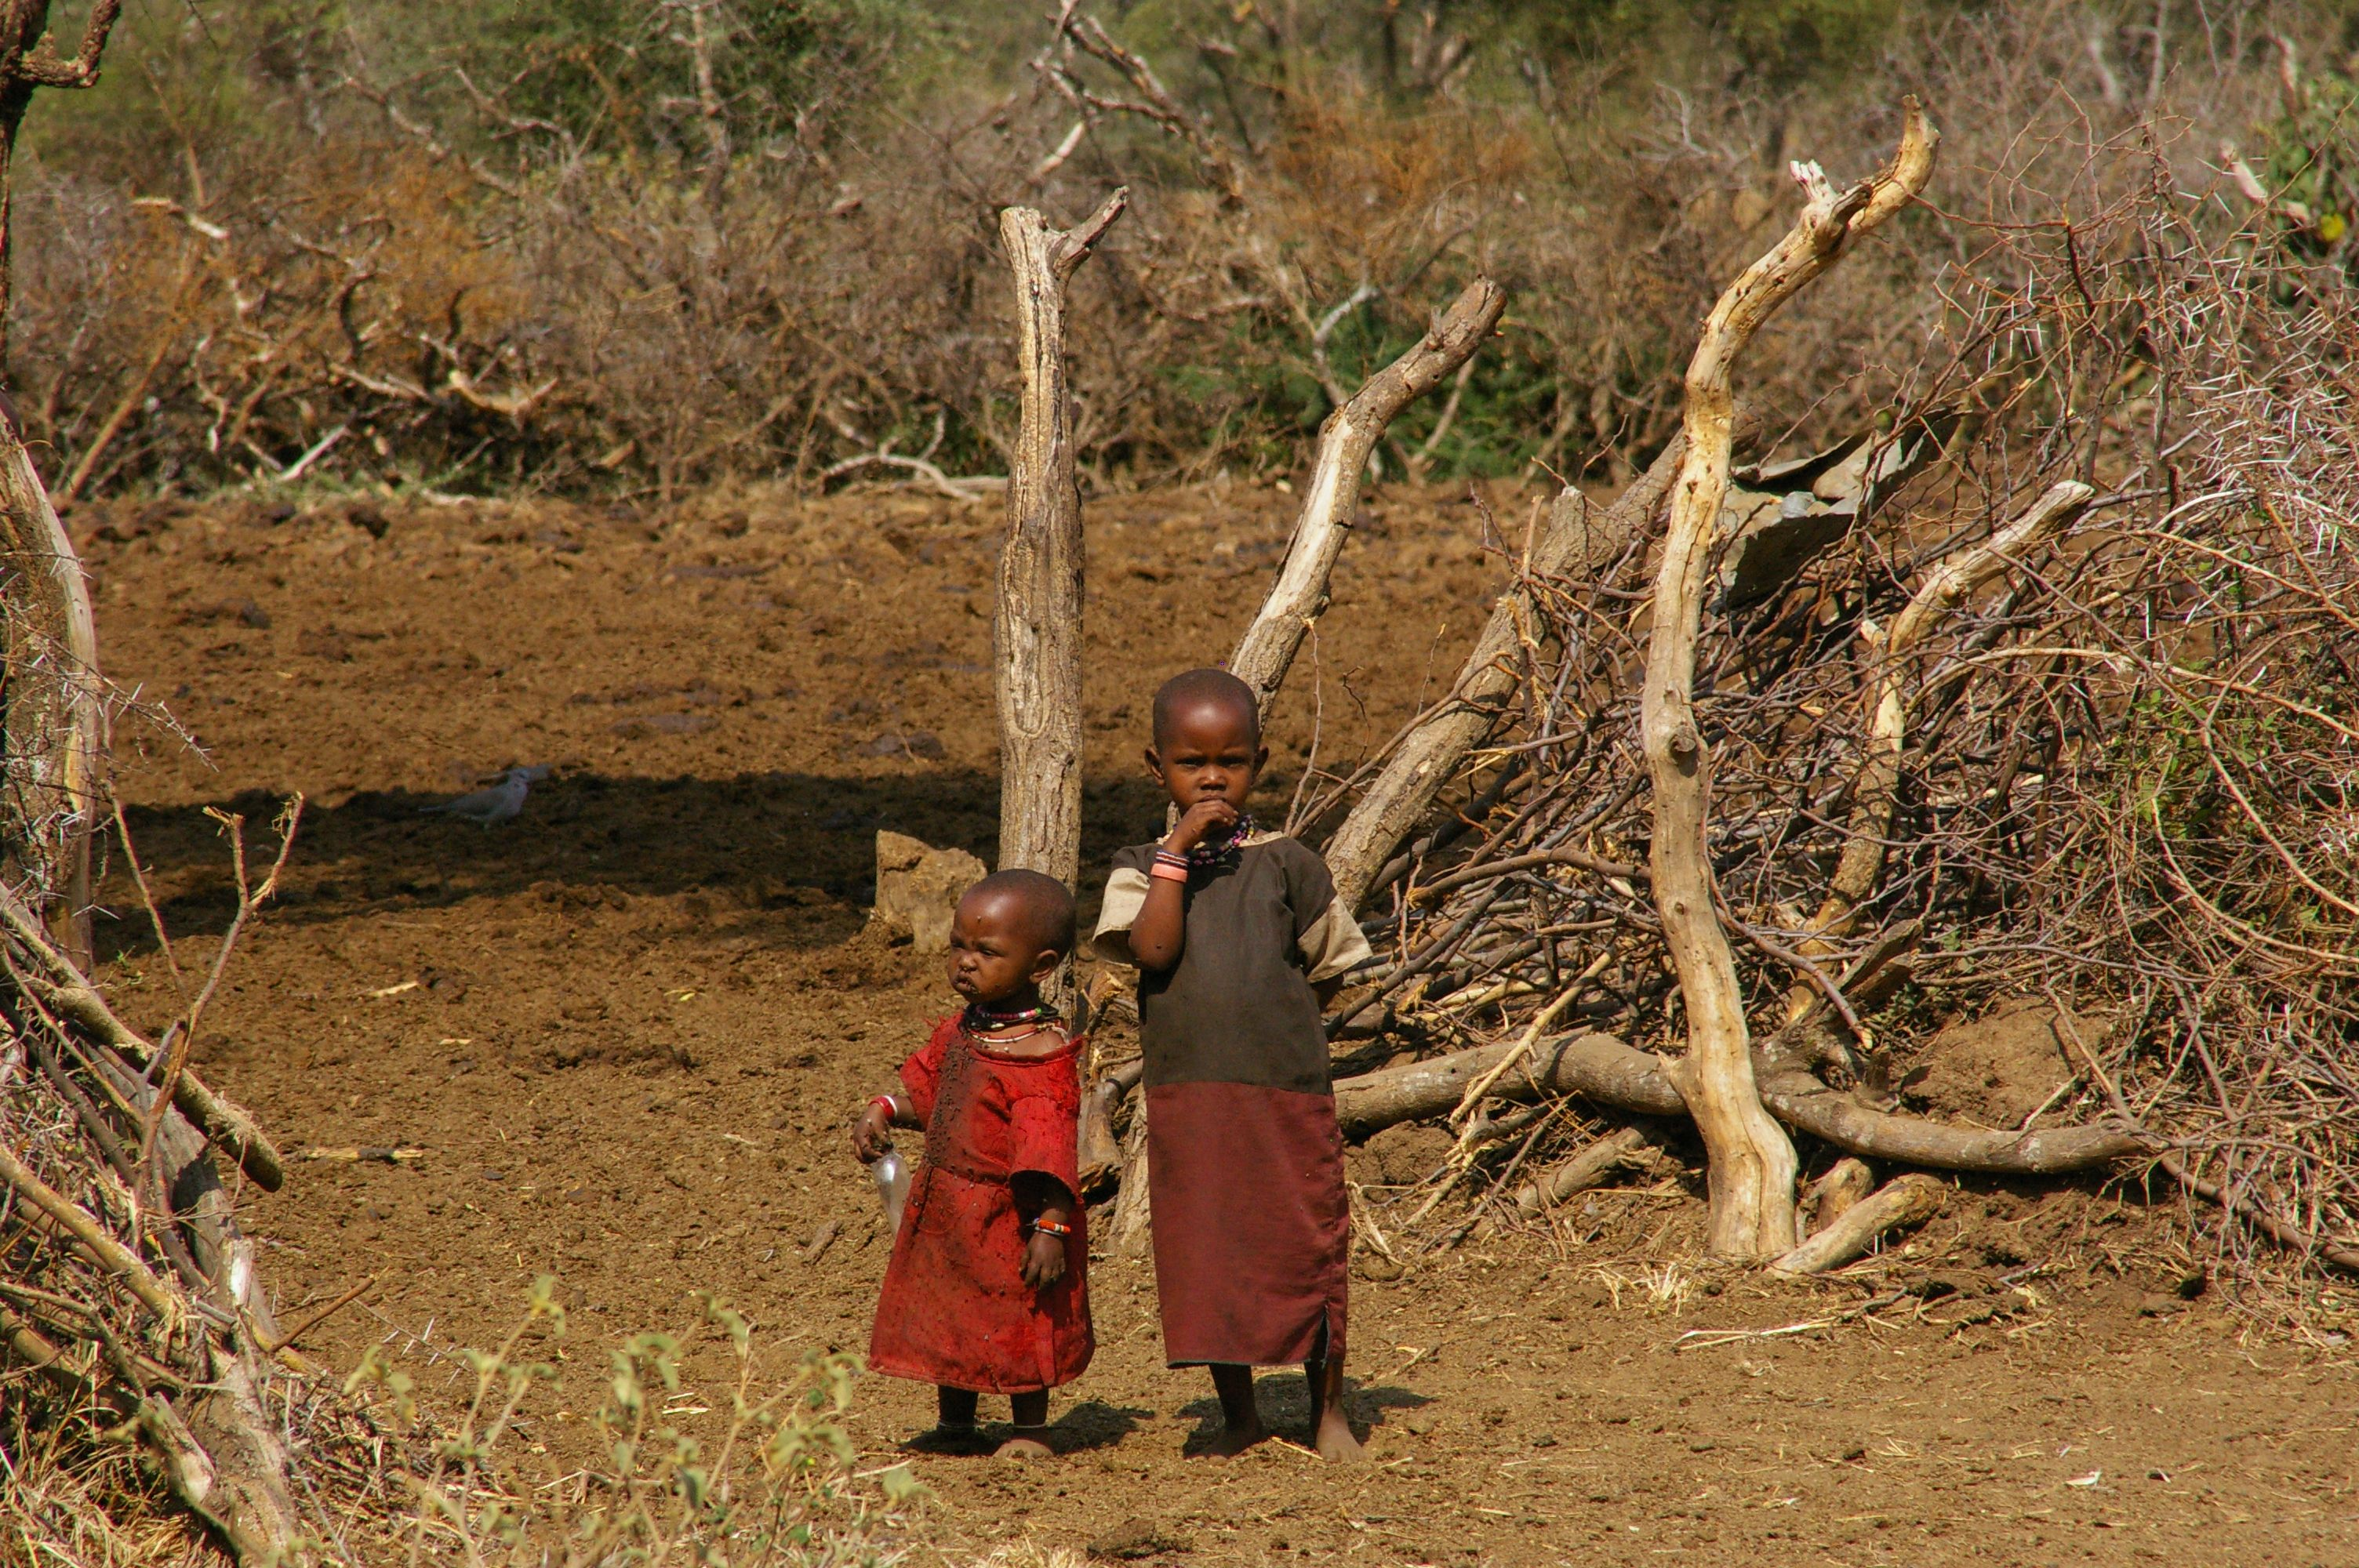 Massai children